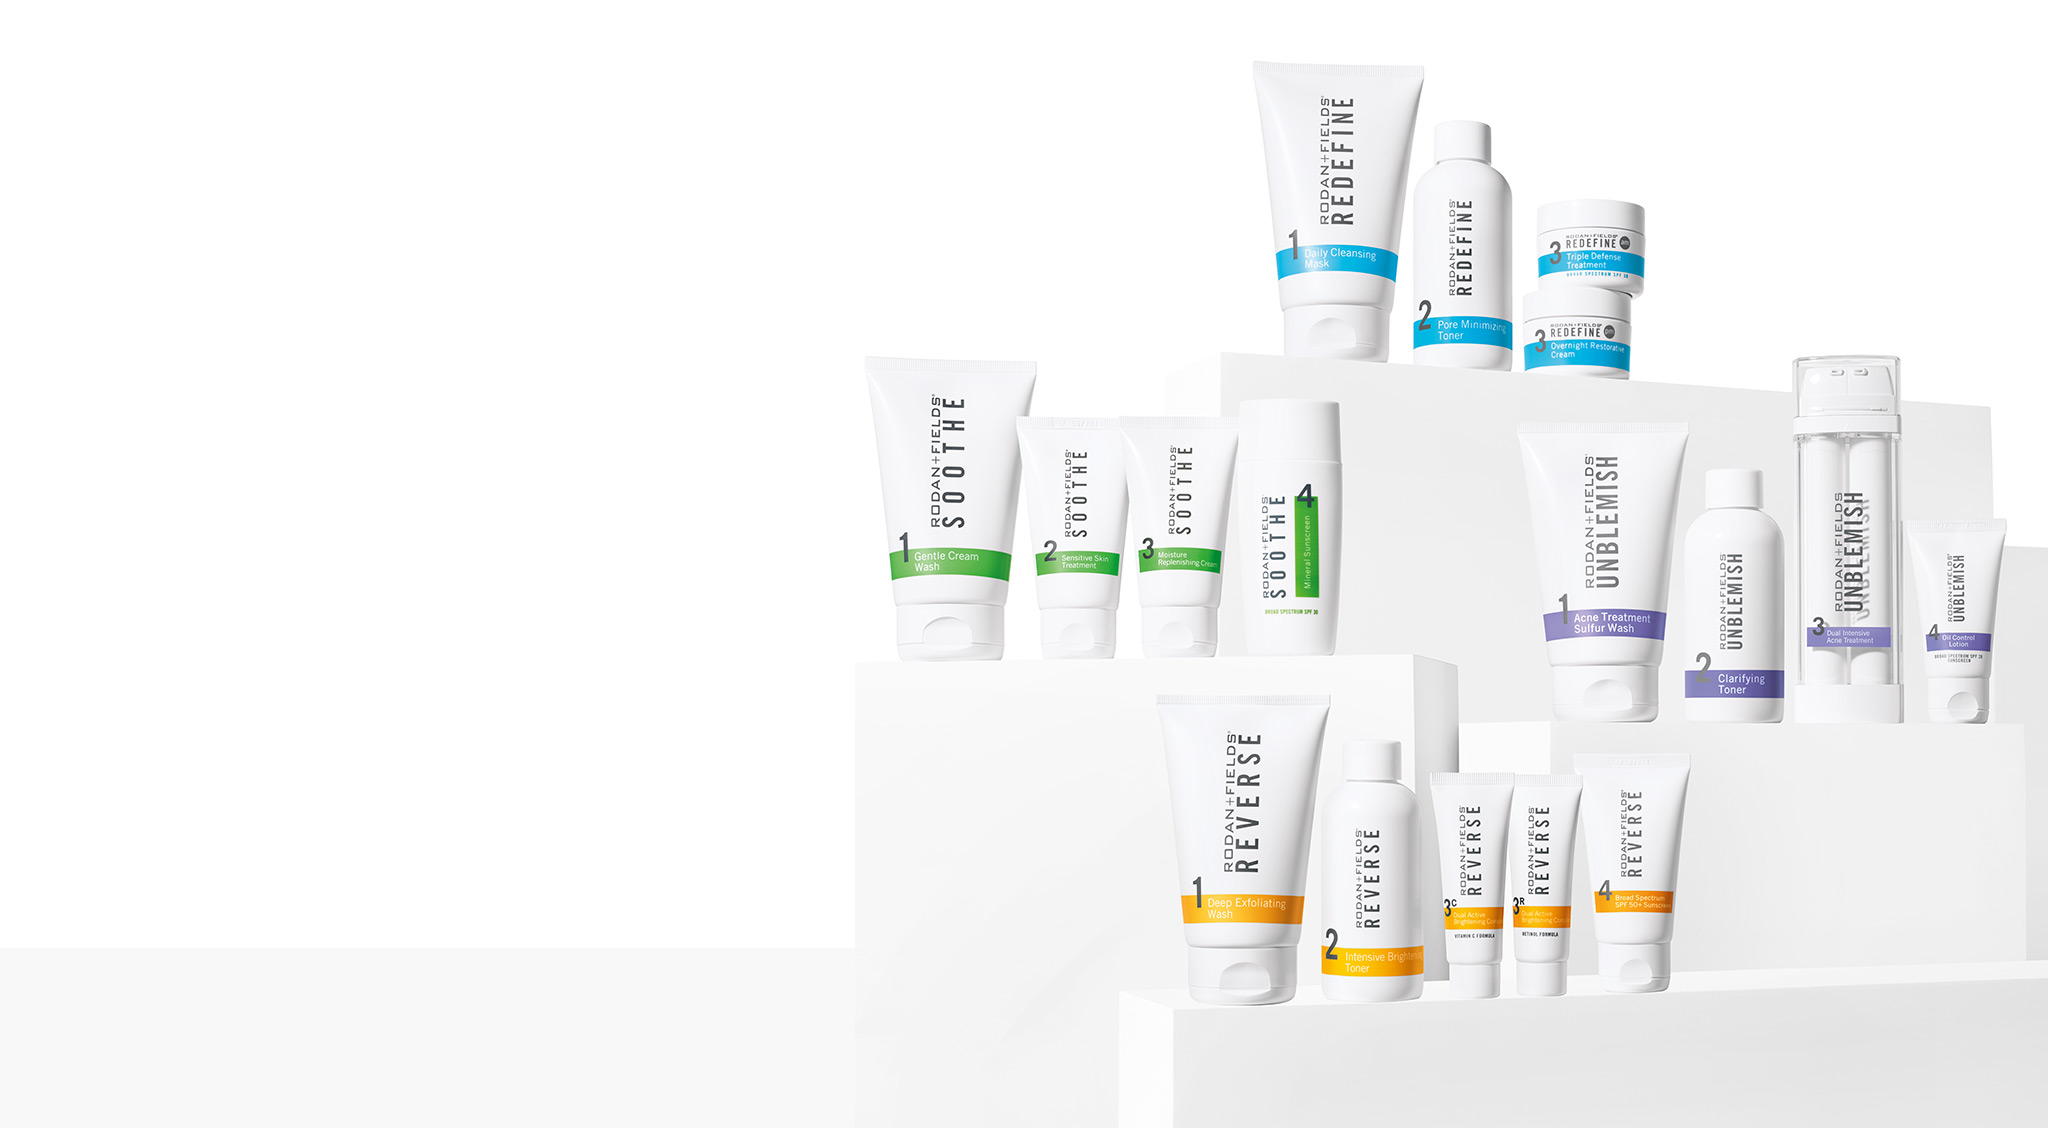 hp-simply-life-changing-skincare-products-right-d.jpg